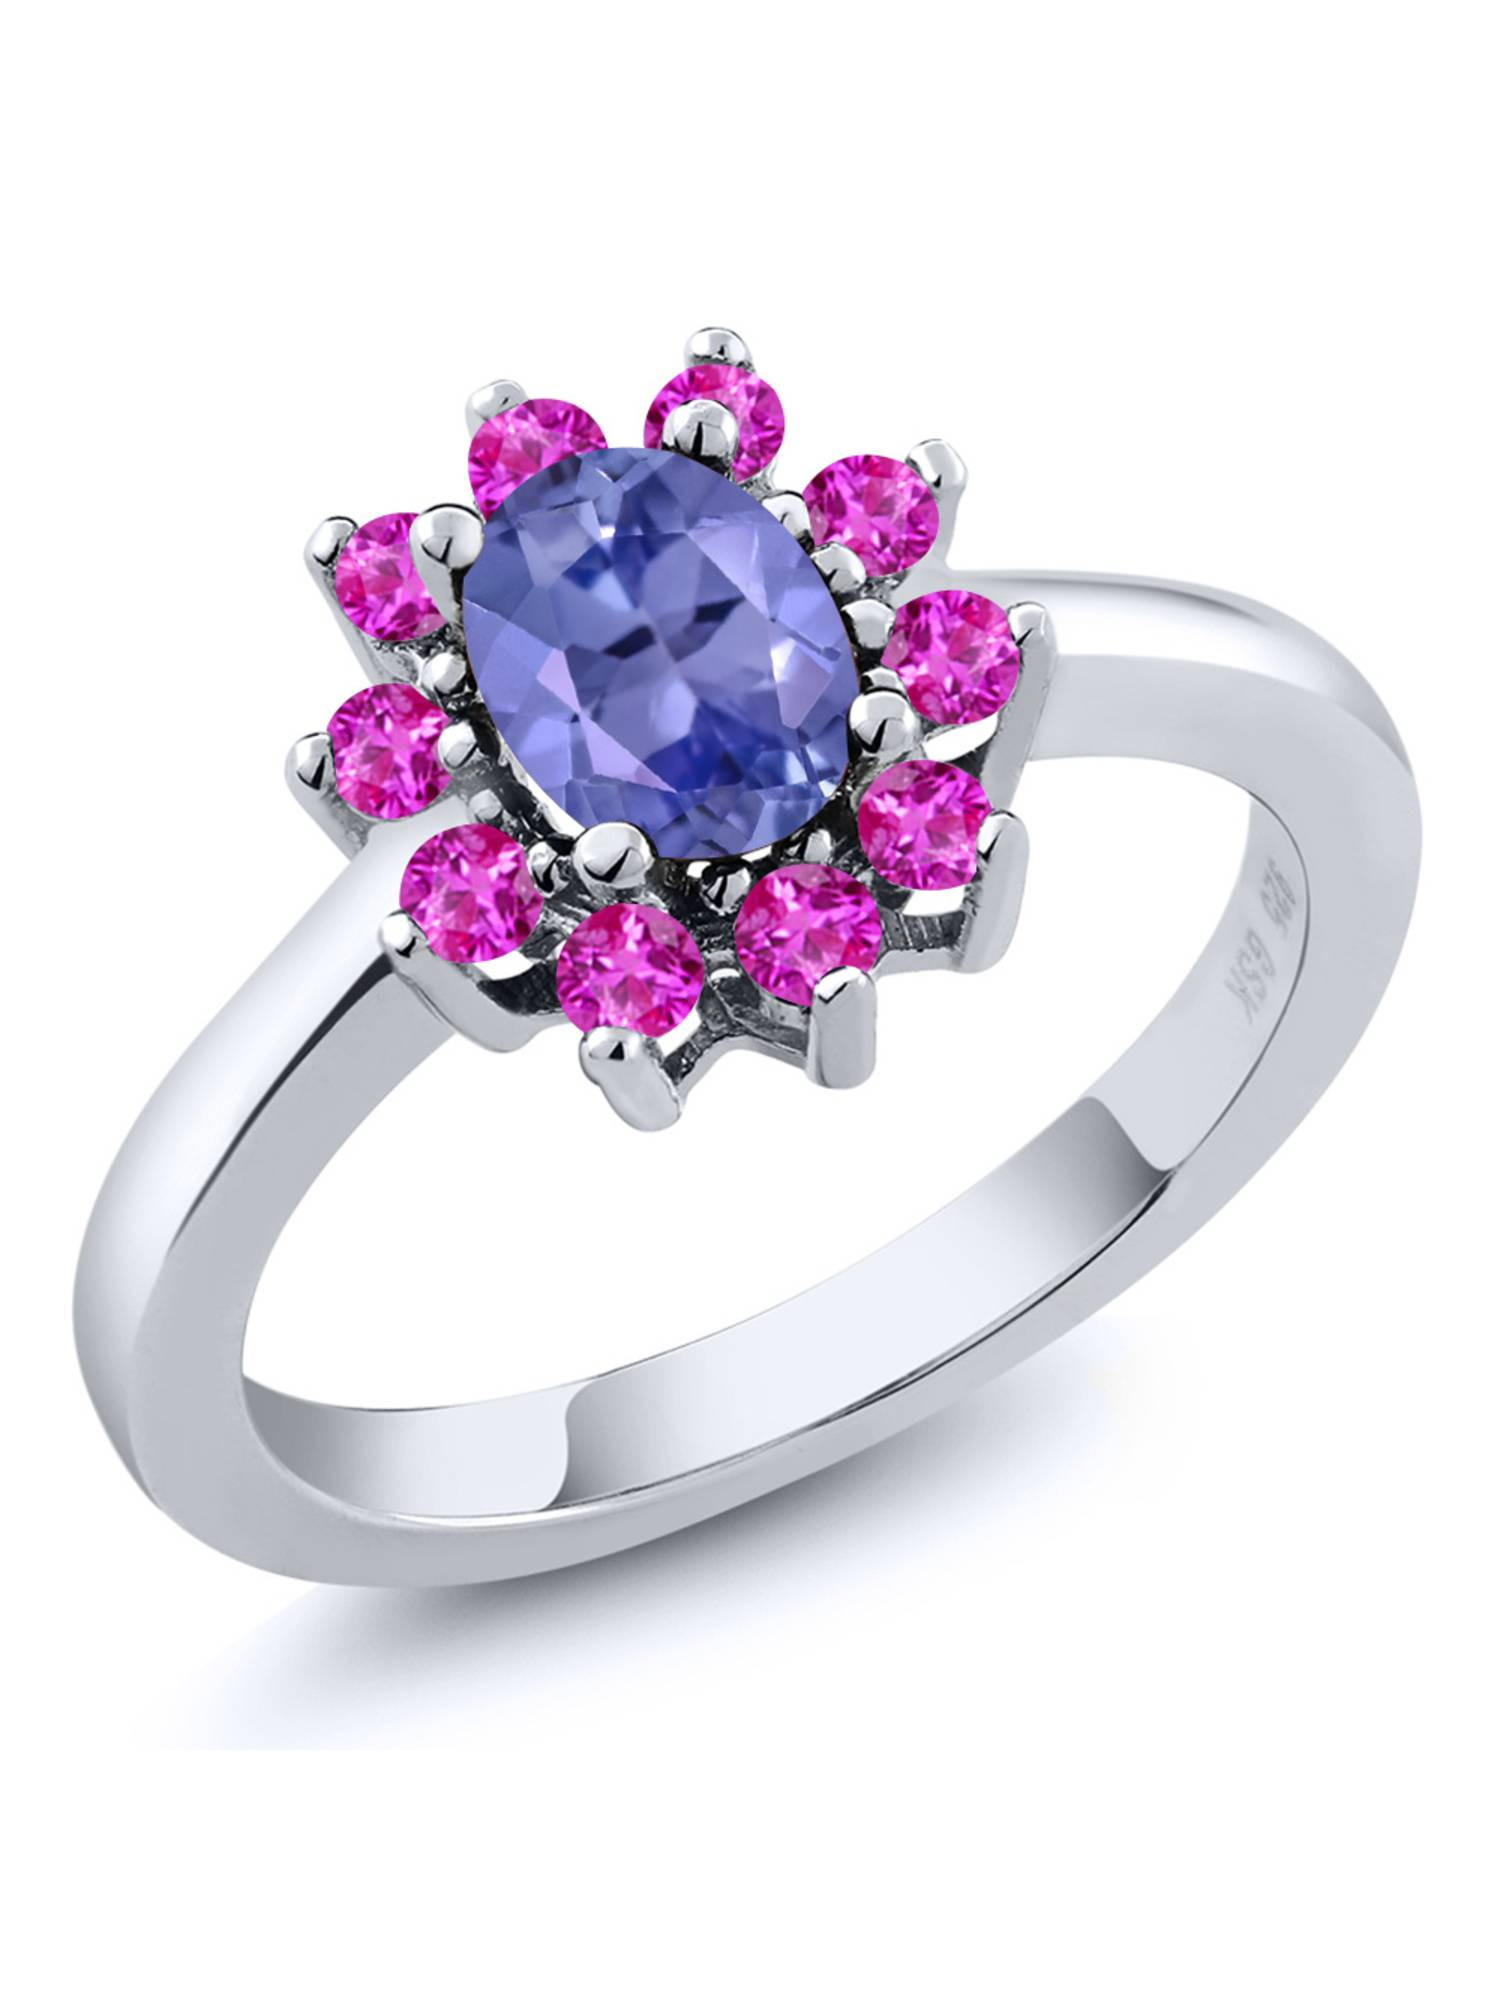 1.25 Ct Oval Blue Tanzanite Pink Sapphire 925 Sterling Silver Ring by